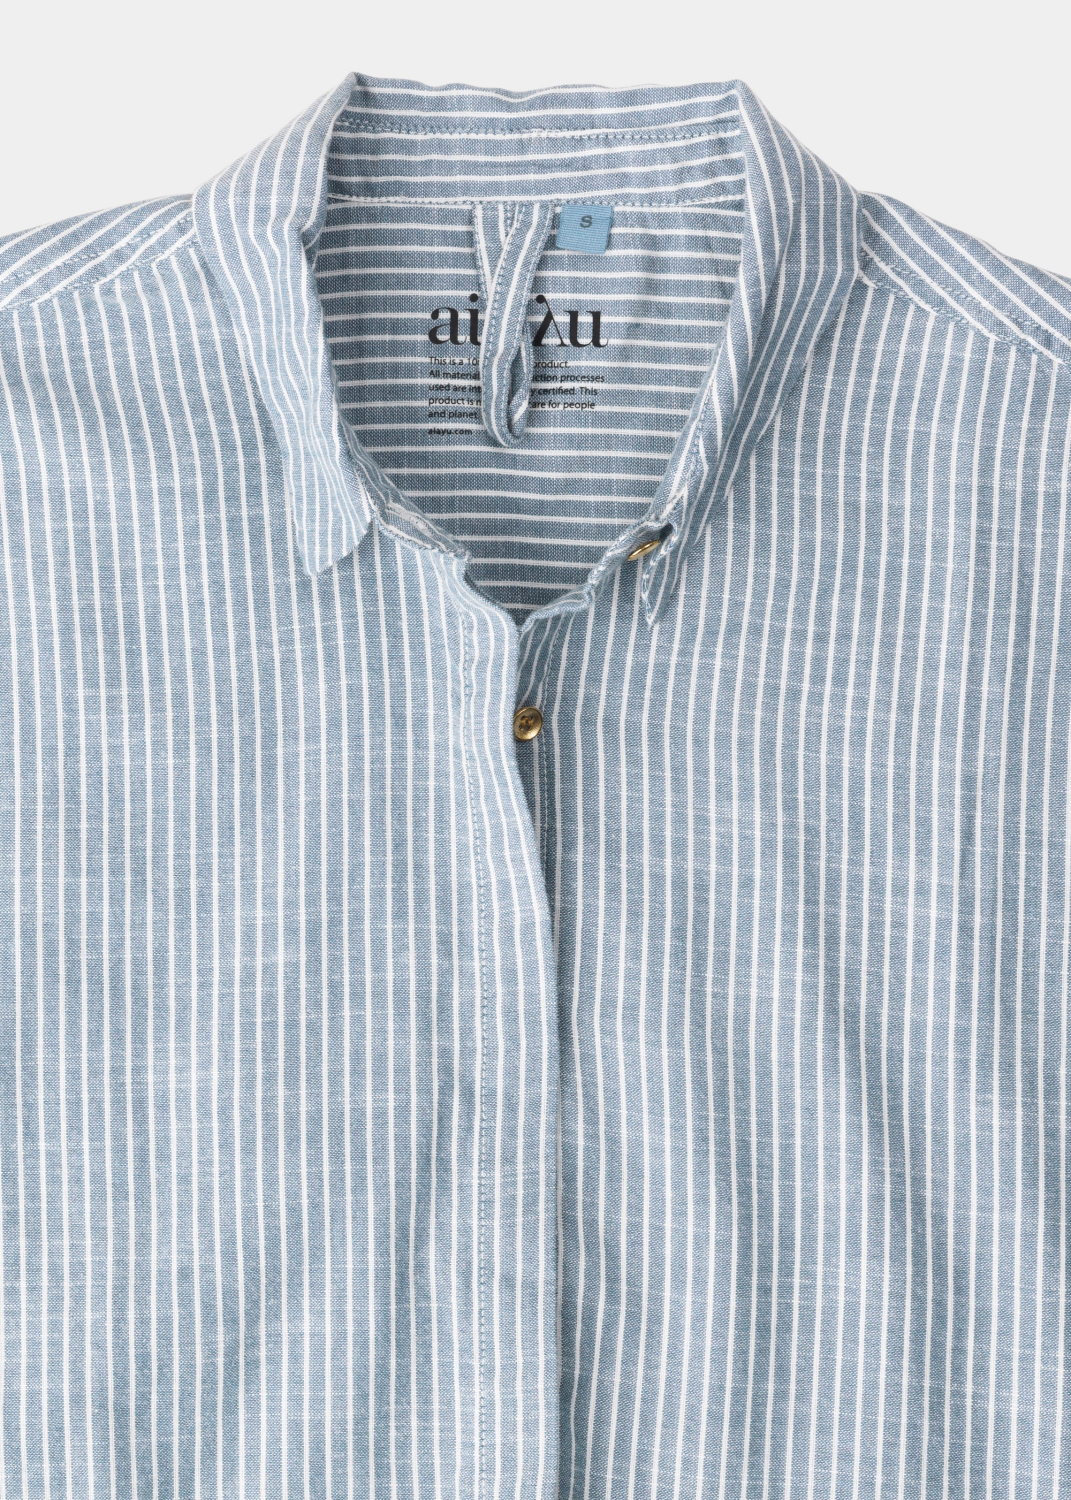 Shirts - Shirt Striped Thumbnail